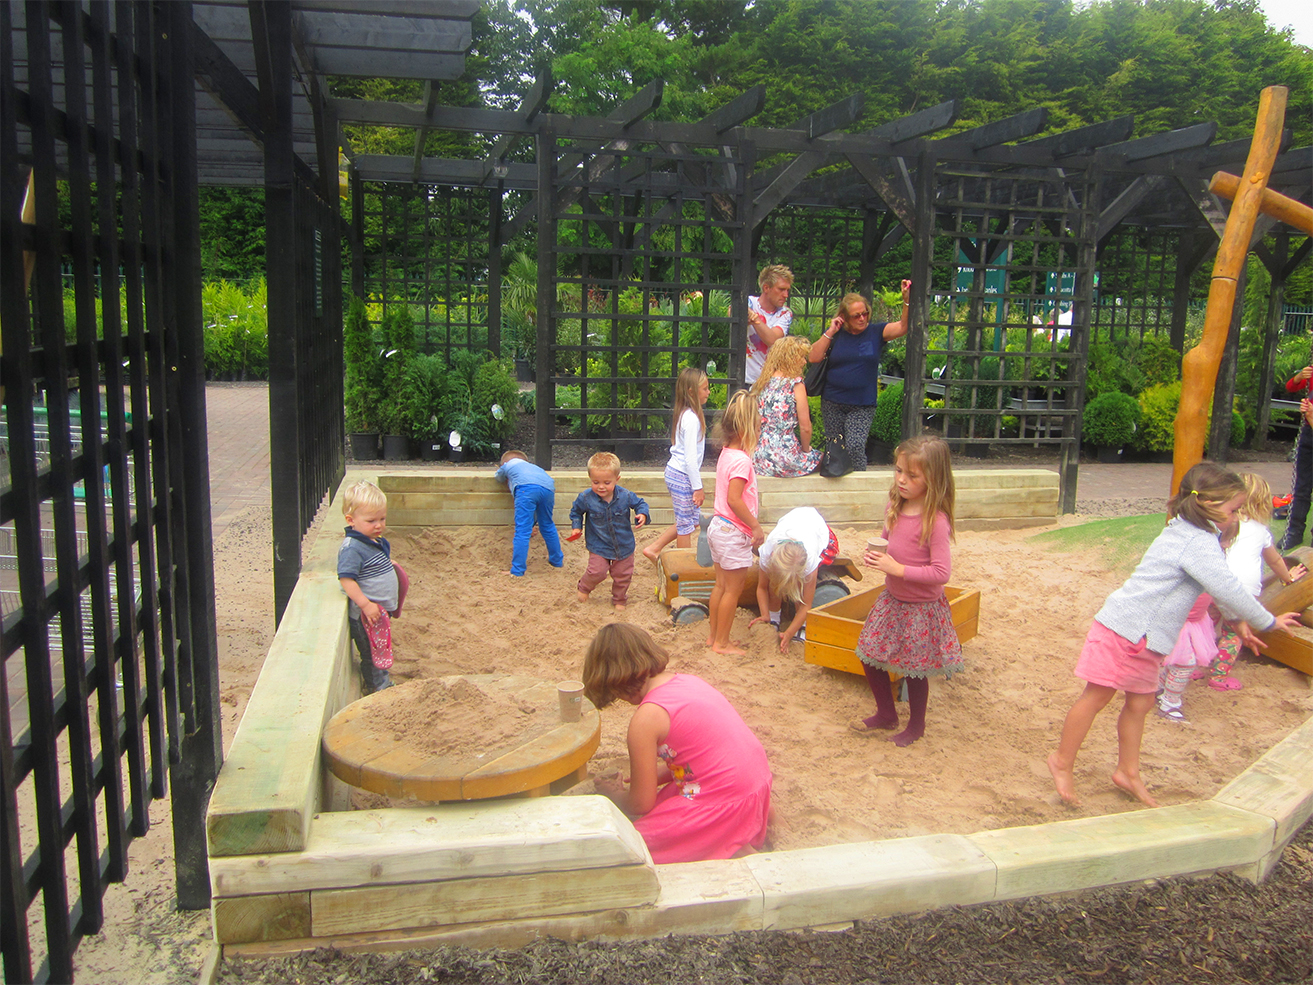 Sand play area, suitable for small children, design, manufactured and installed by The Children's Playground Co. Ltd - CPCL